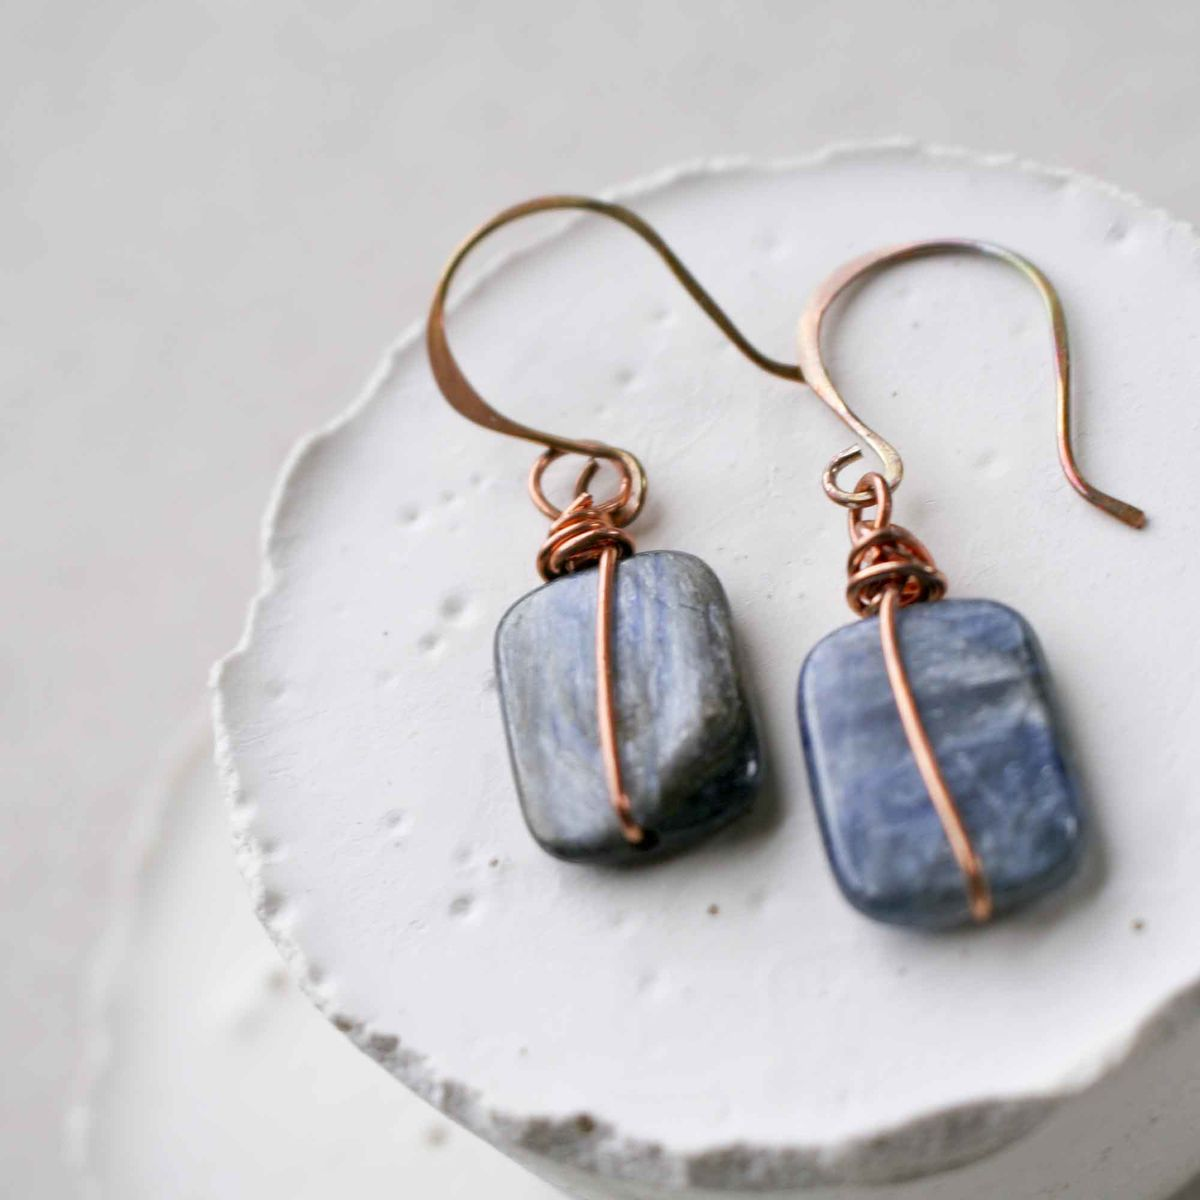 Rectangular Icy Blue Kyanite Dangle Earrings with Copper Forged Earwires - product image